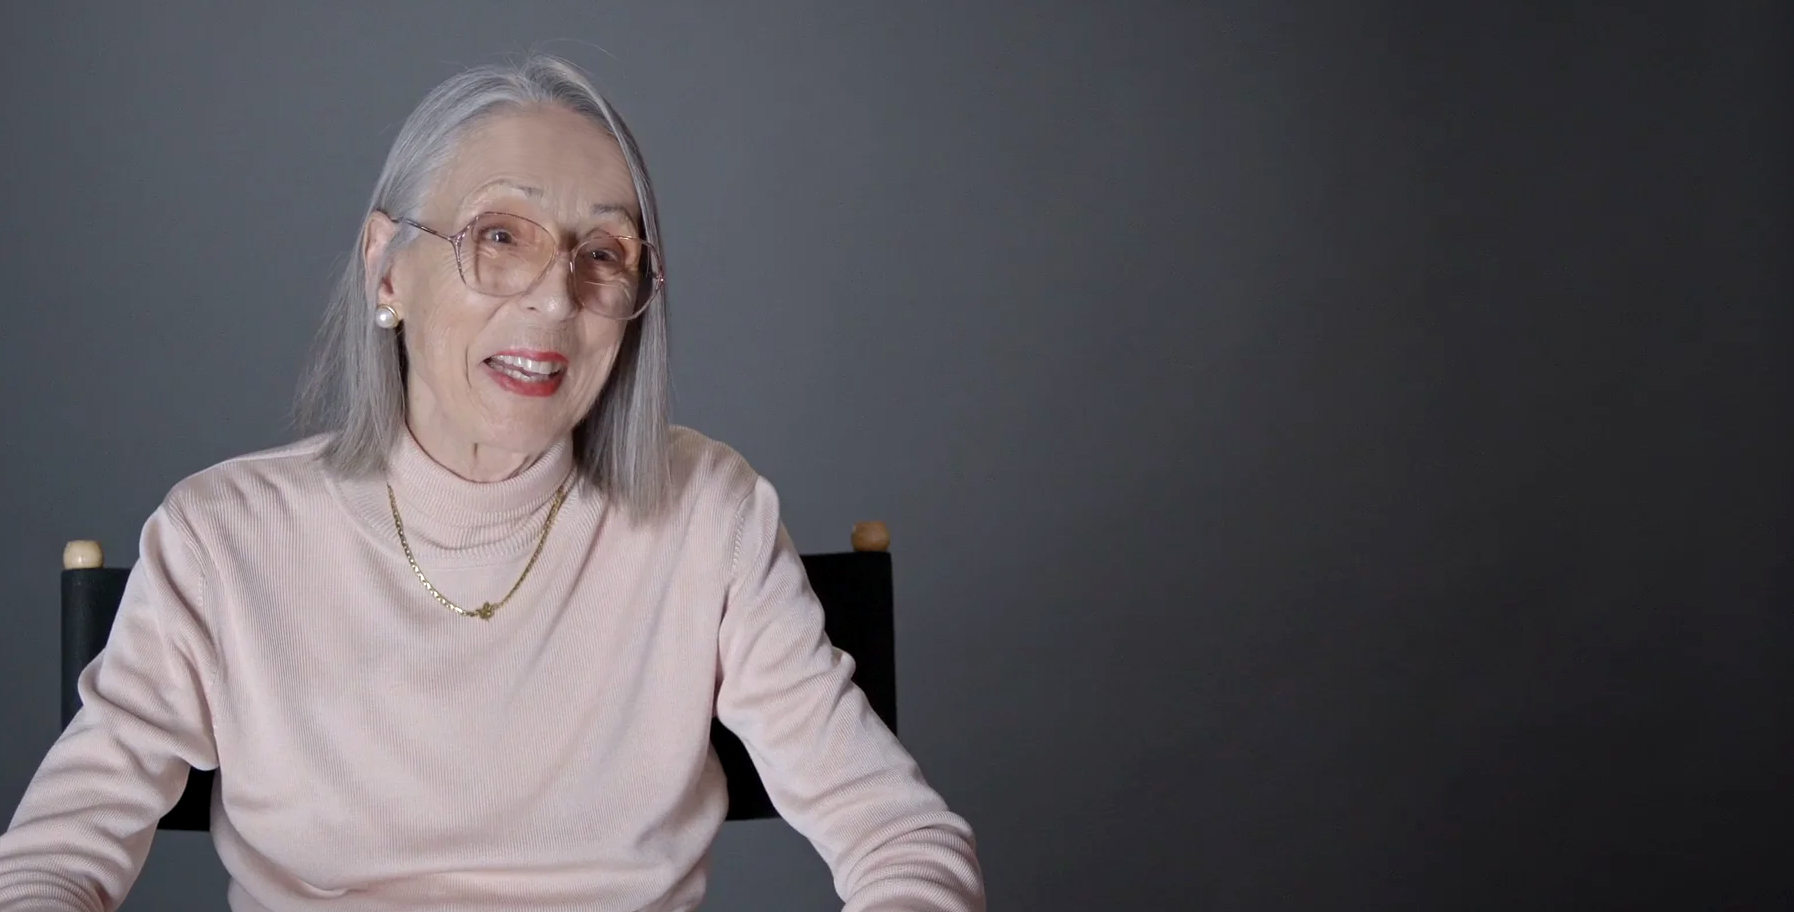 WATCH NOW: - The Legacy Video Series Episode About Renate Leuschner